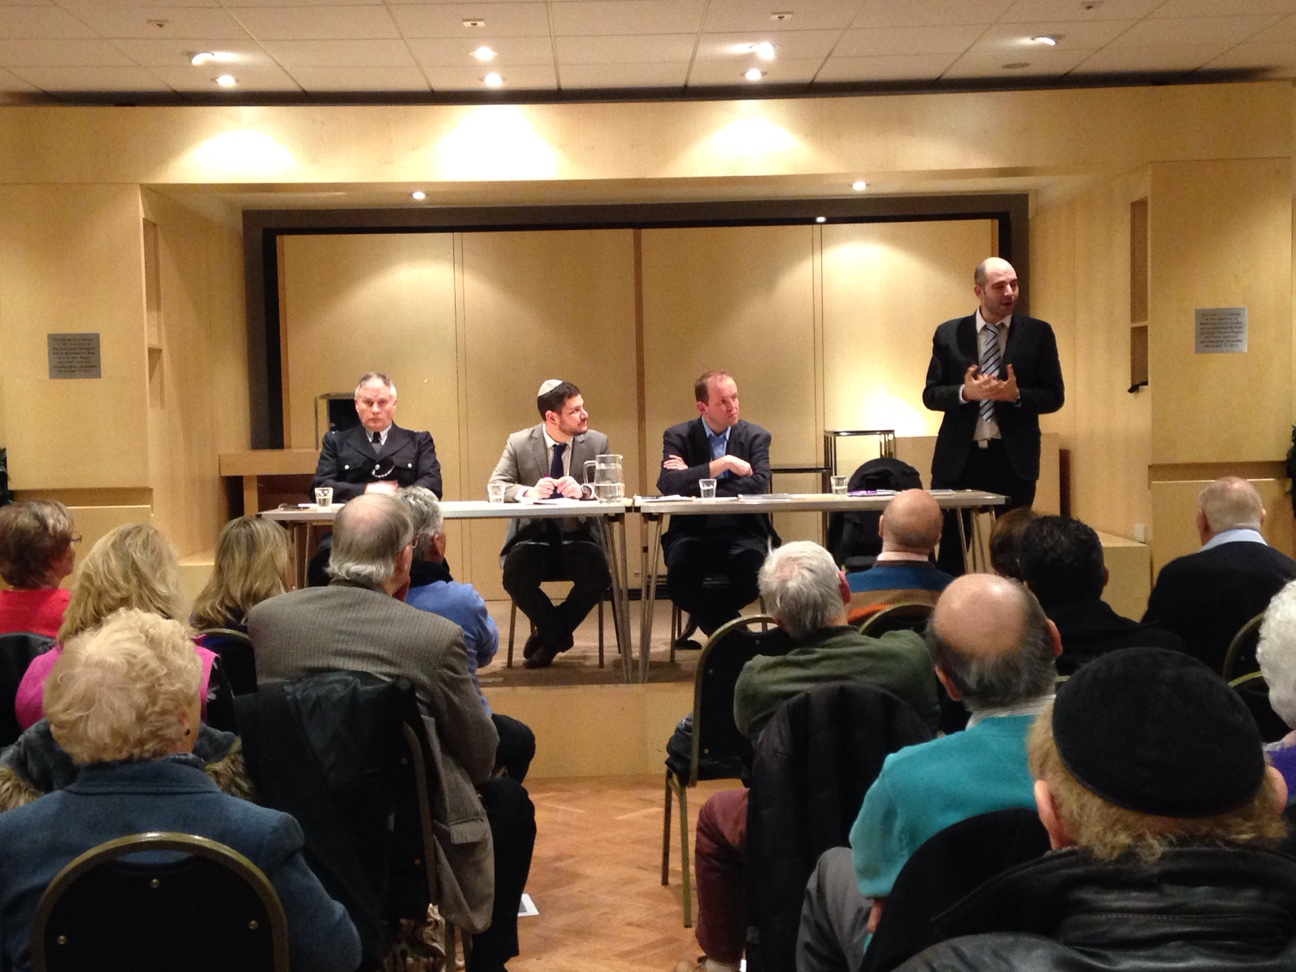 The meeting held in Oakwood on Tuesday, February 17, discussed increase in anti-Semitic behaviour